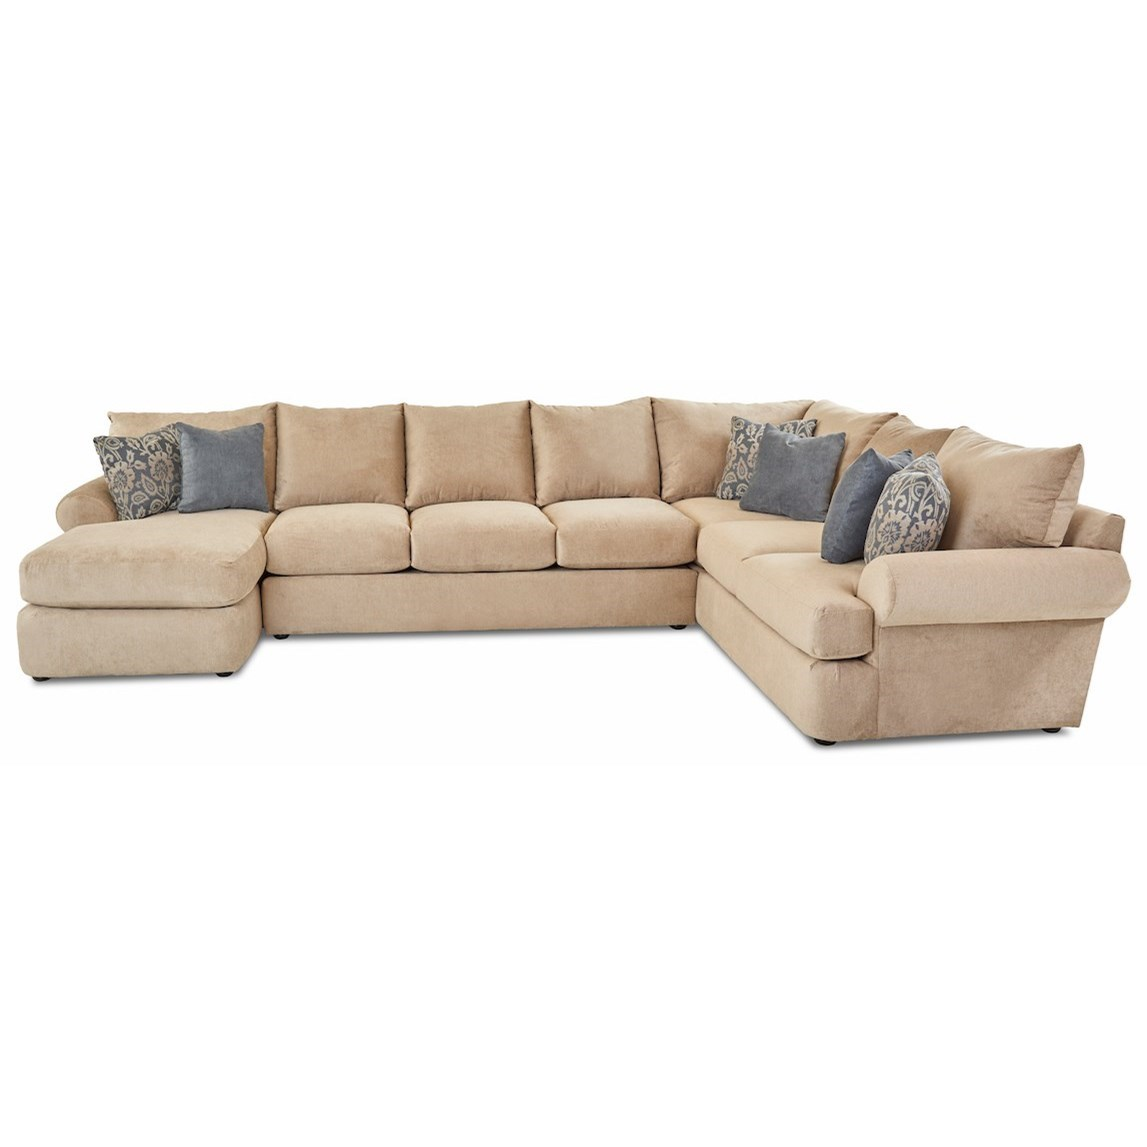 Cora 3-Piece Sectional Sofa w/ LAF Chaise by Klaussner at Johnny Janosik